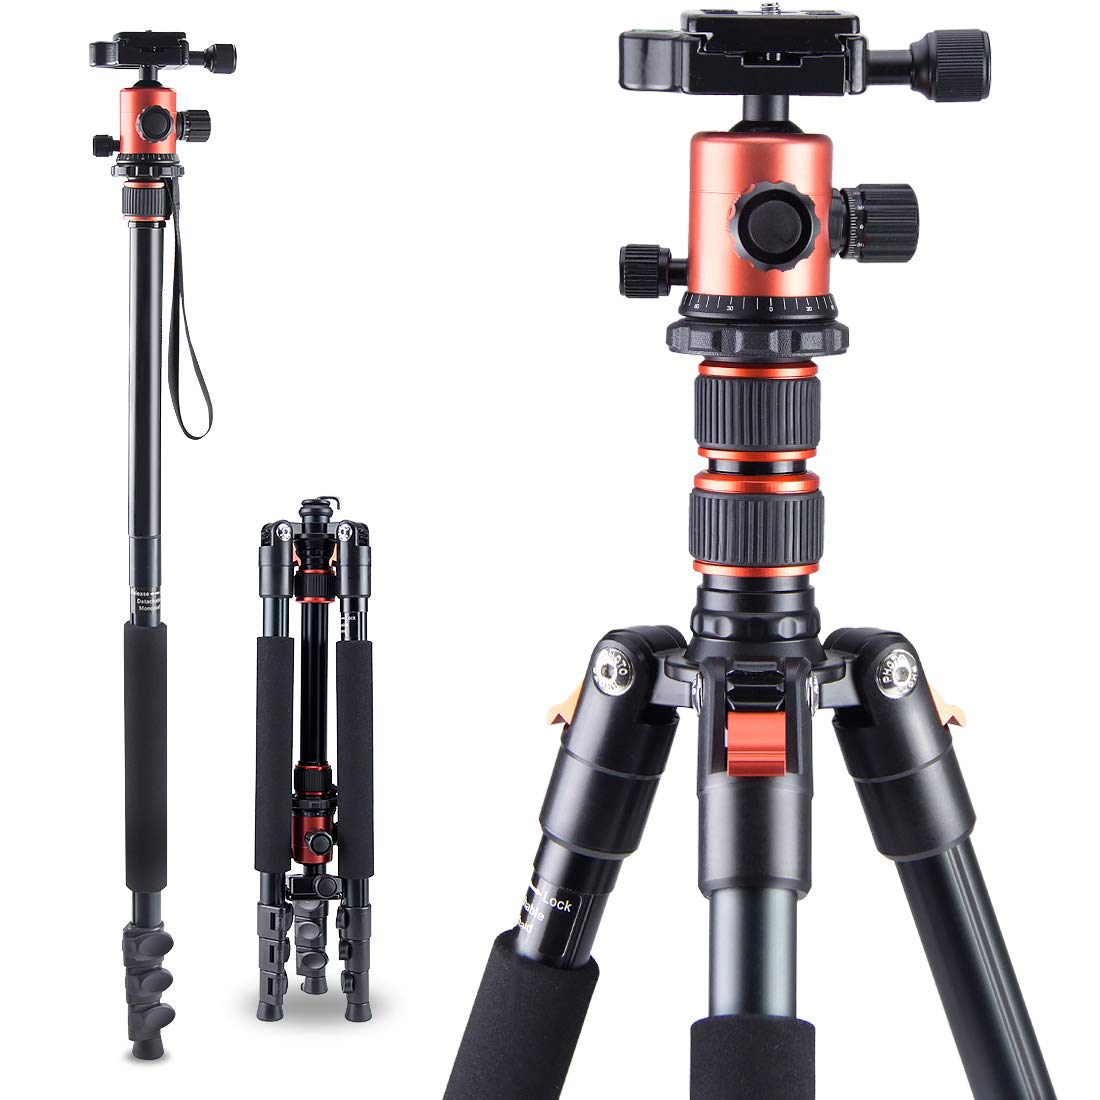 Beinuo 66'' Tripod,Camera Tripod for DSLR, Compact and Lightweight Aluminum Alloy Tripod with Monopod, Ideal for Travel and Work